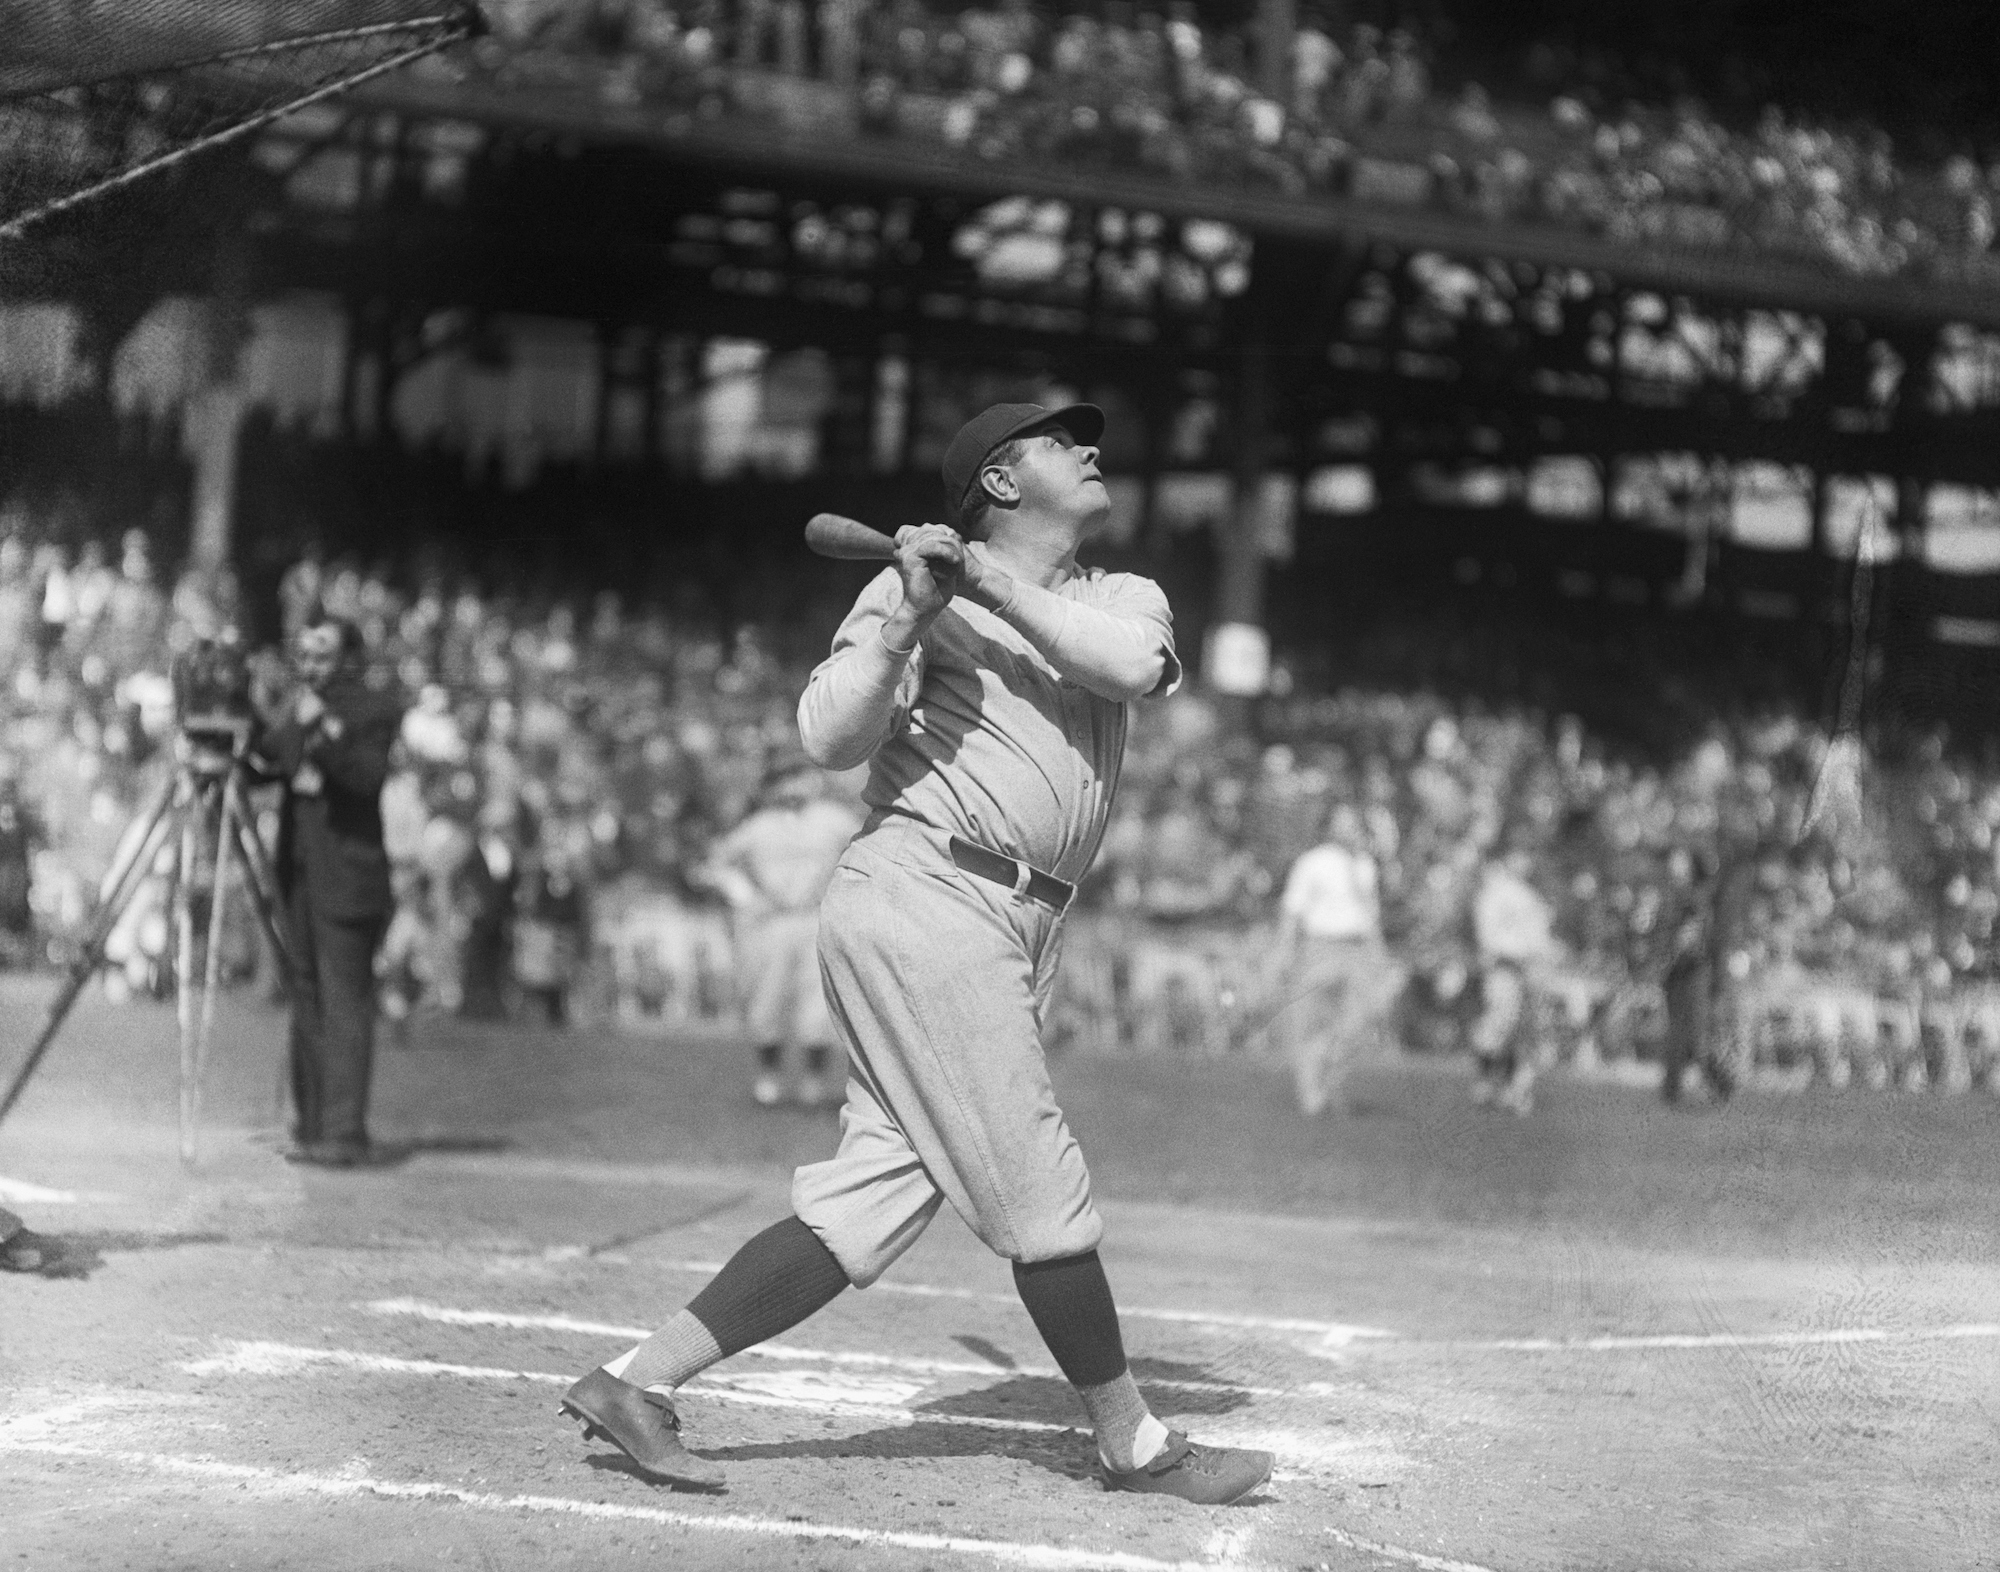 Babe Ruth's Temper Cost Him the Yankees Captaincy After Only 5 Games on the Job